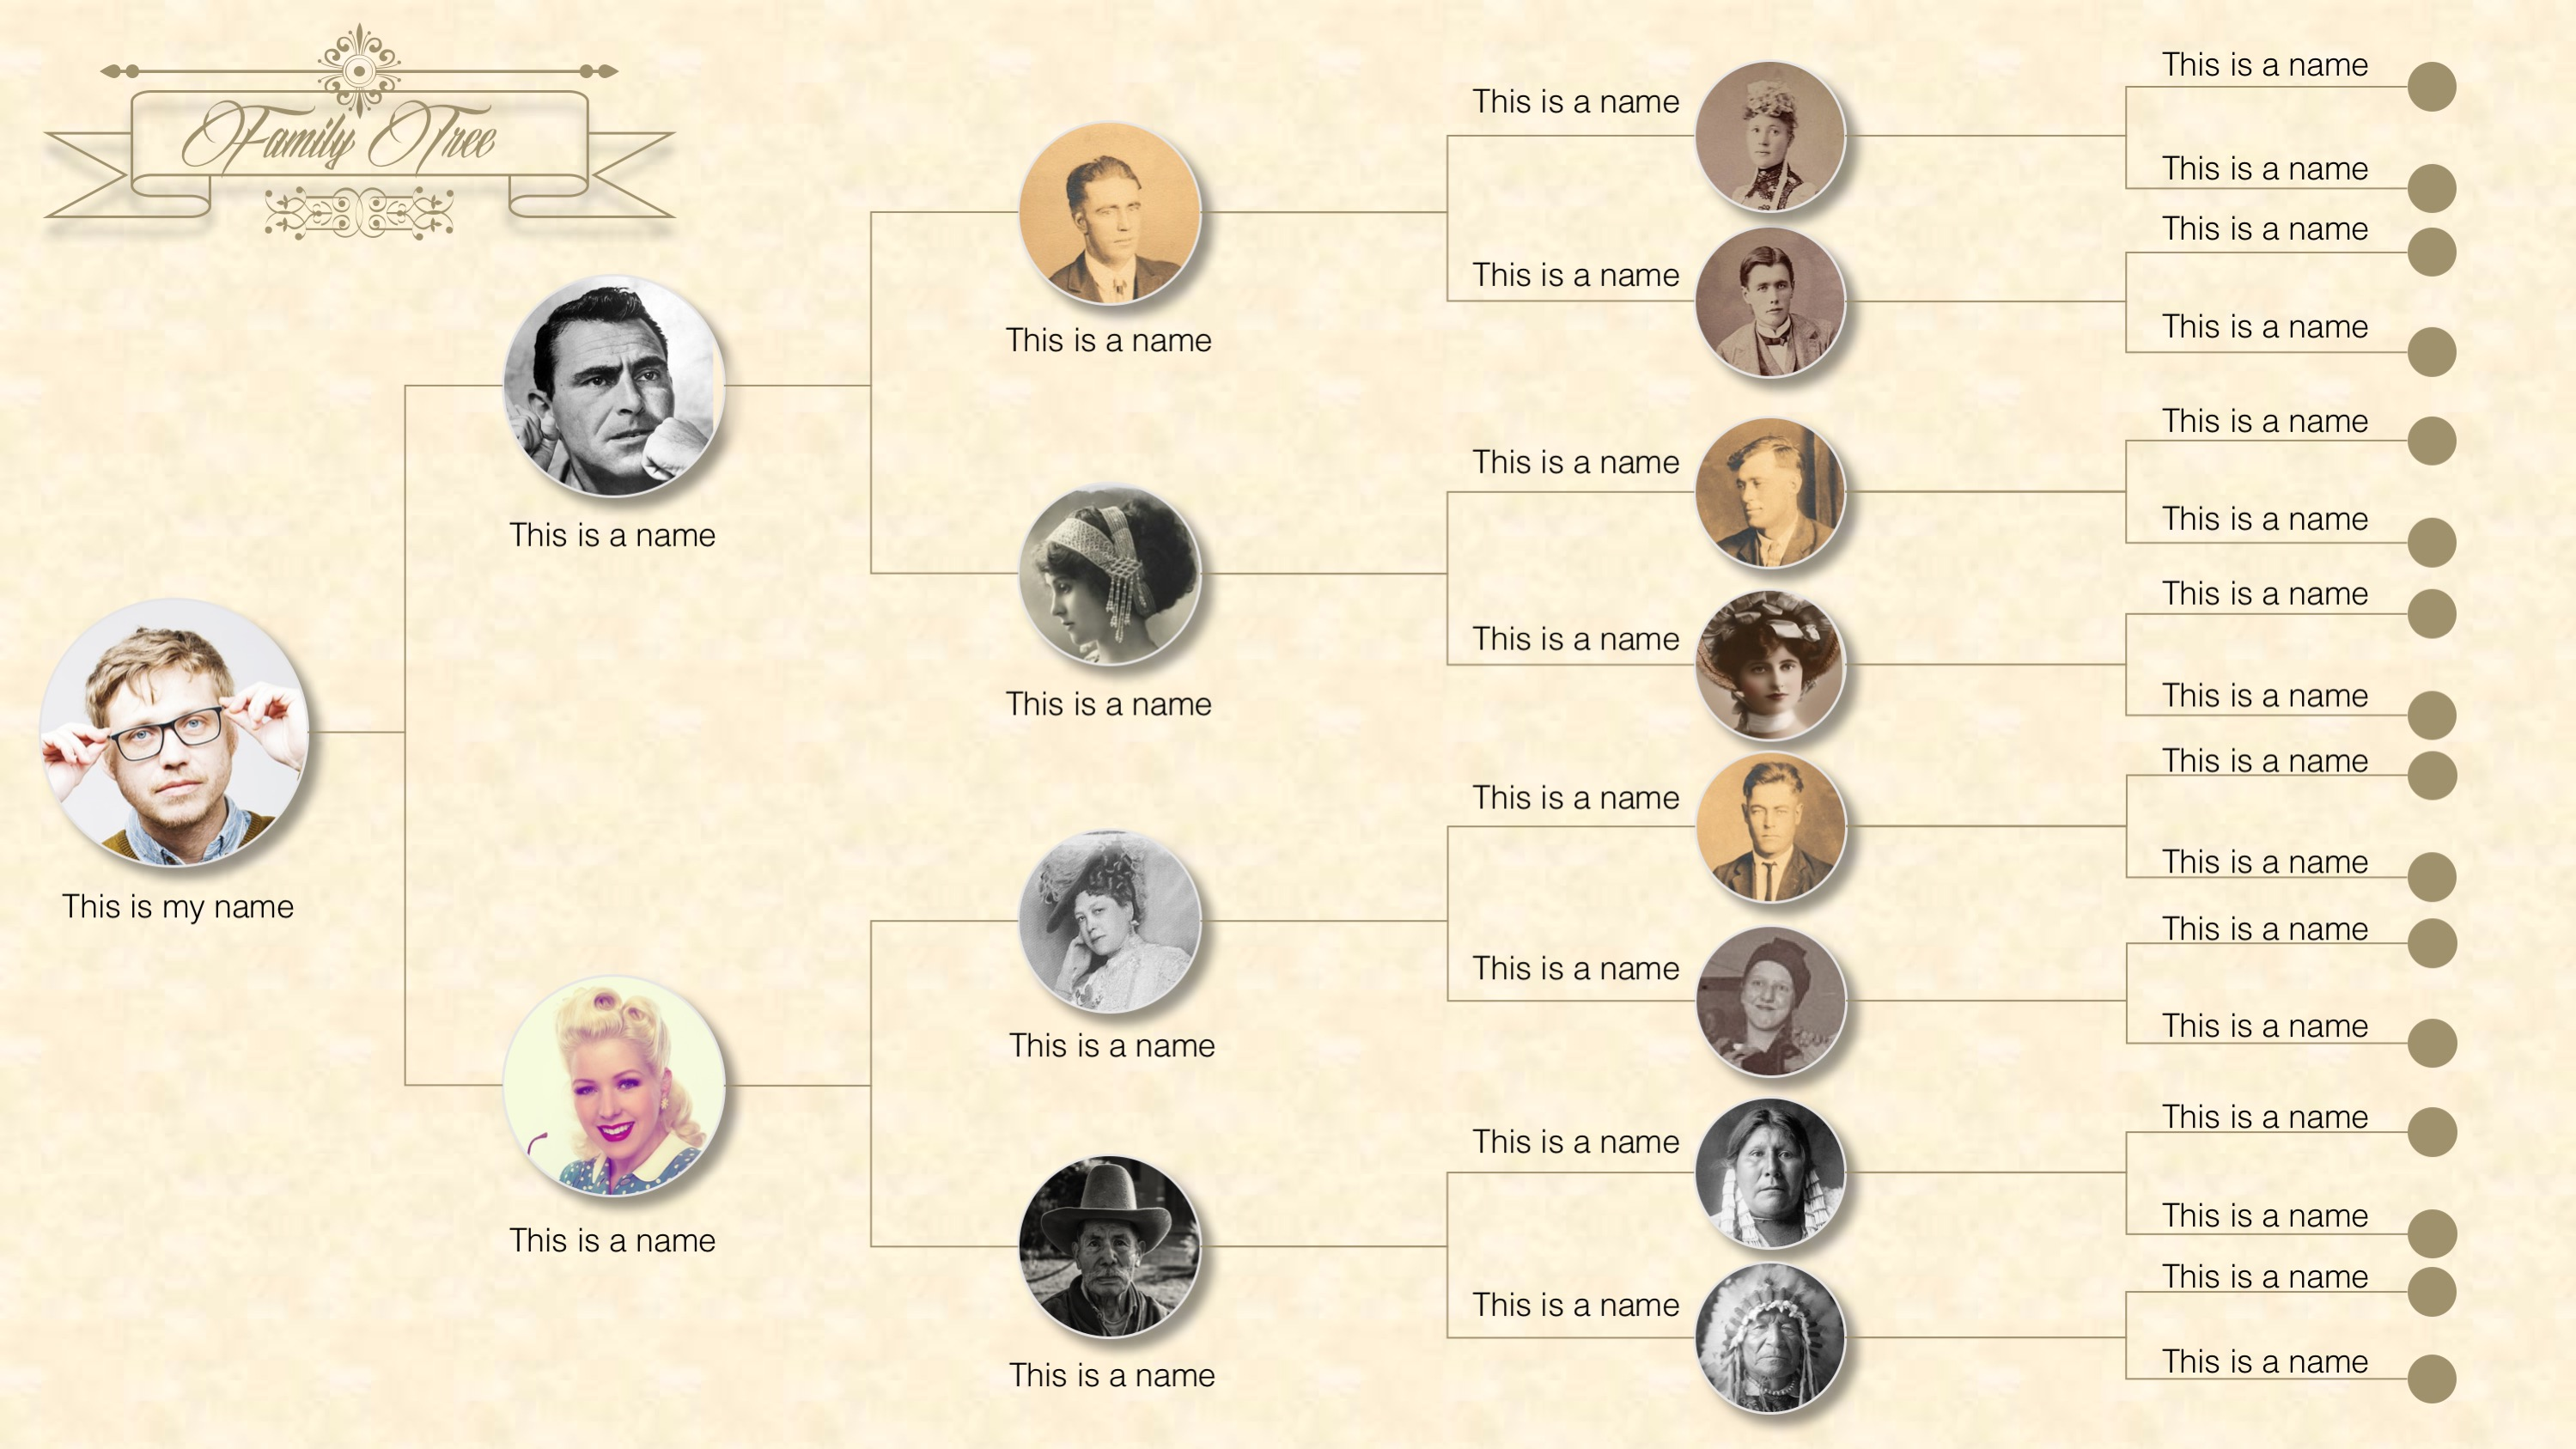 PPT Template of Family Tree